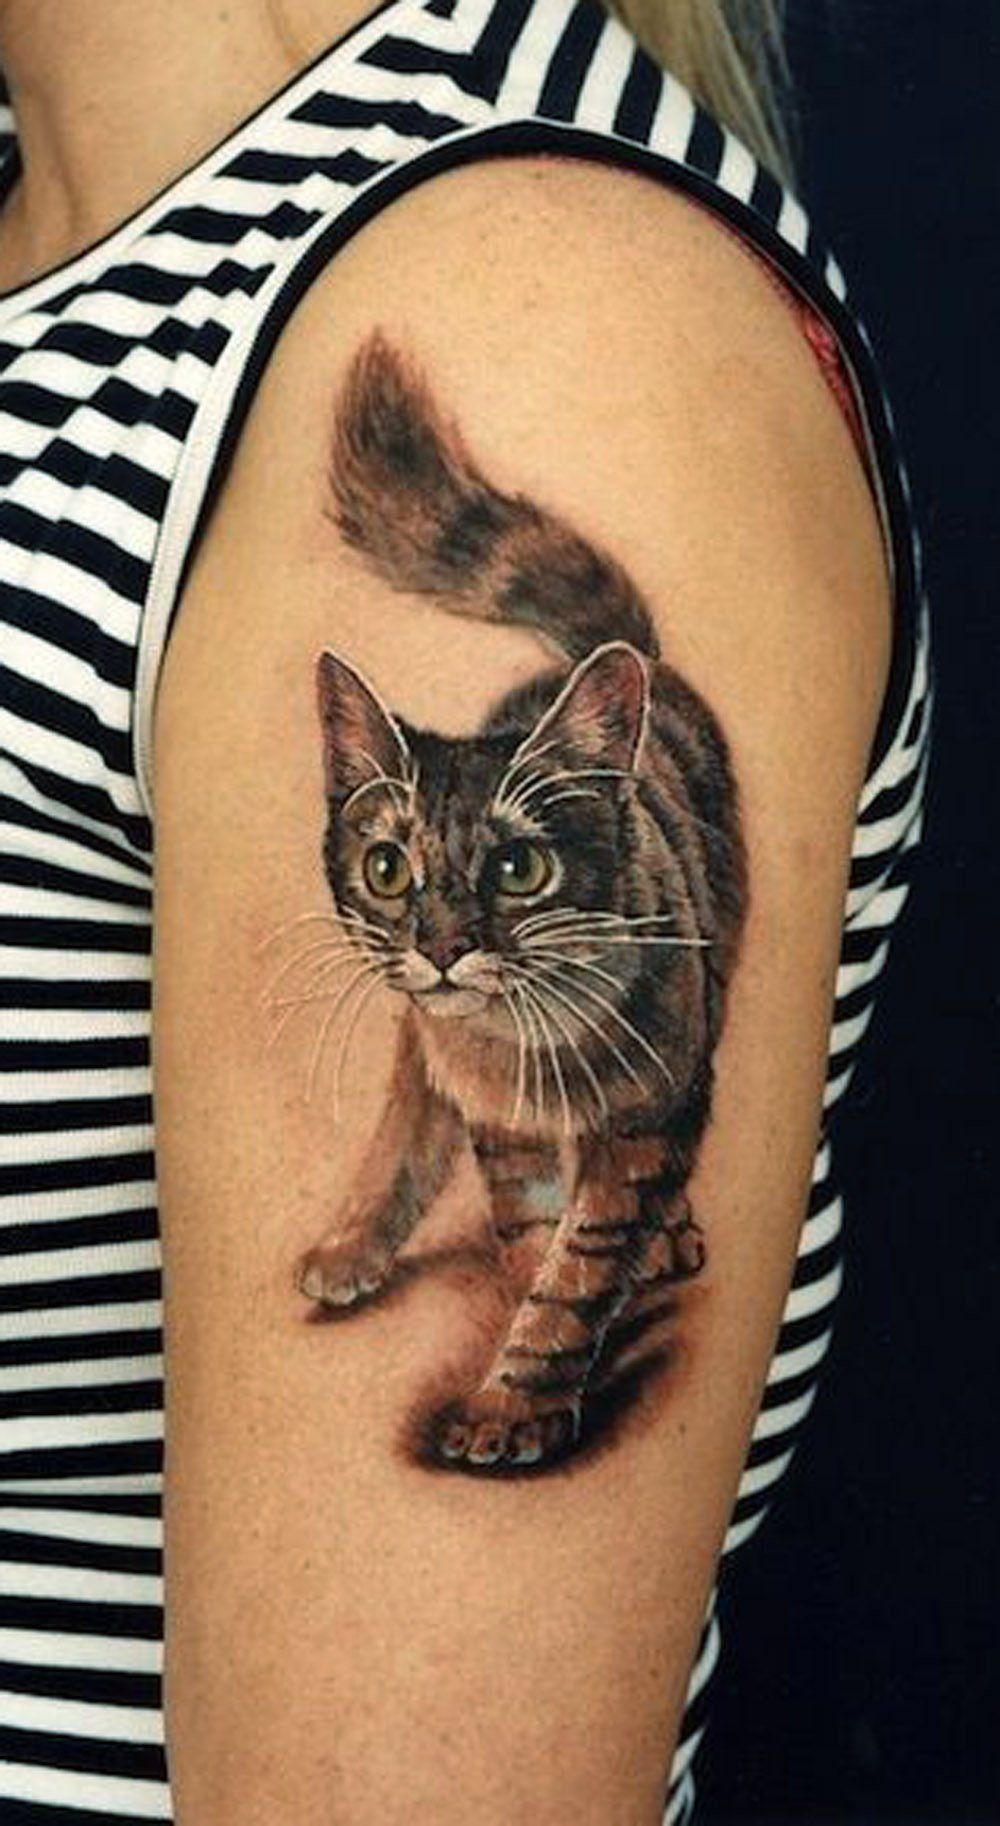 20 Cute Simple Cat Tattoo Ideas For Kitty Lovers Cat Tattoo Designs Cat Lover Tattoo Cat Tattoo